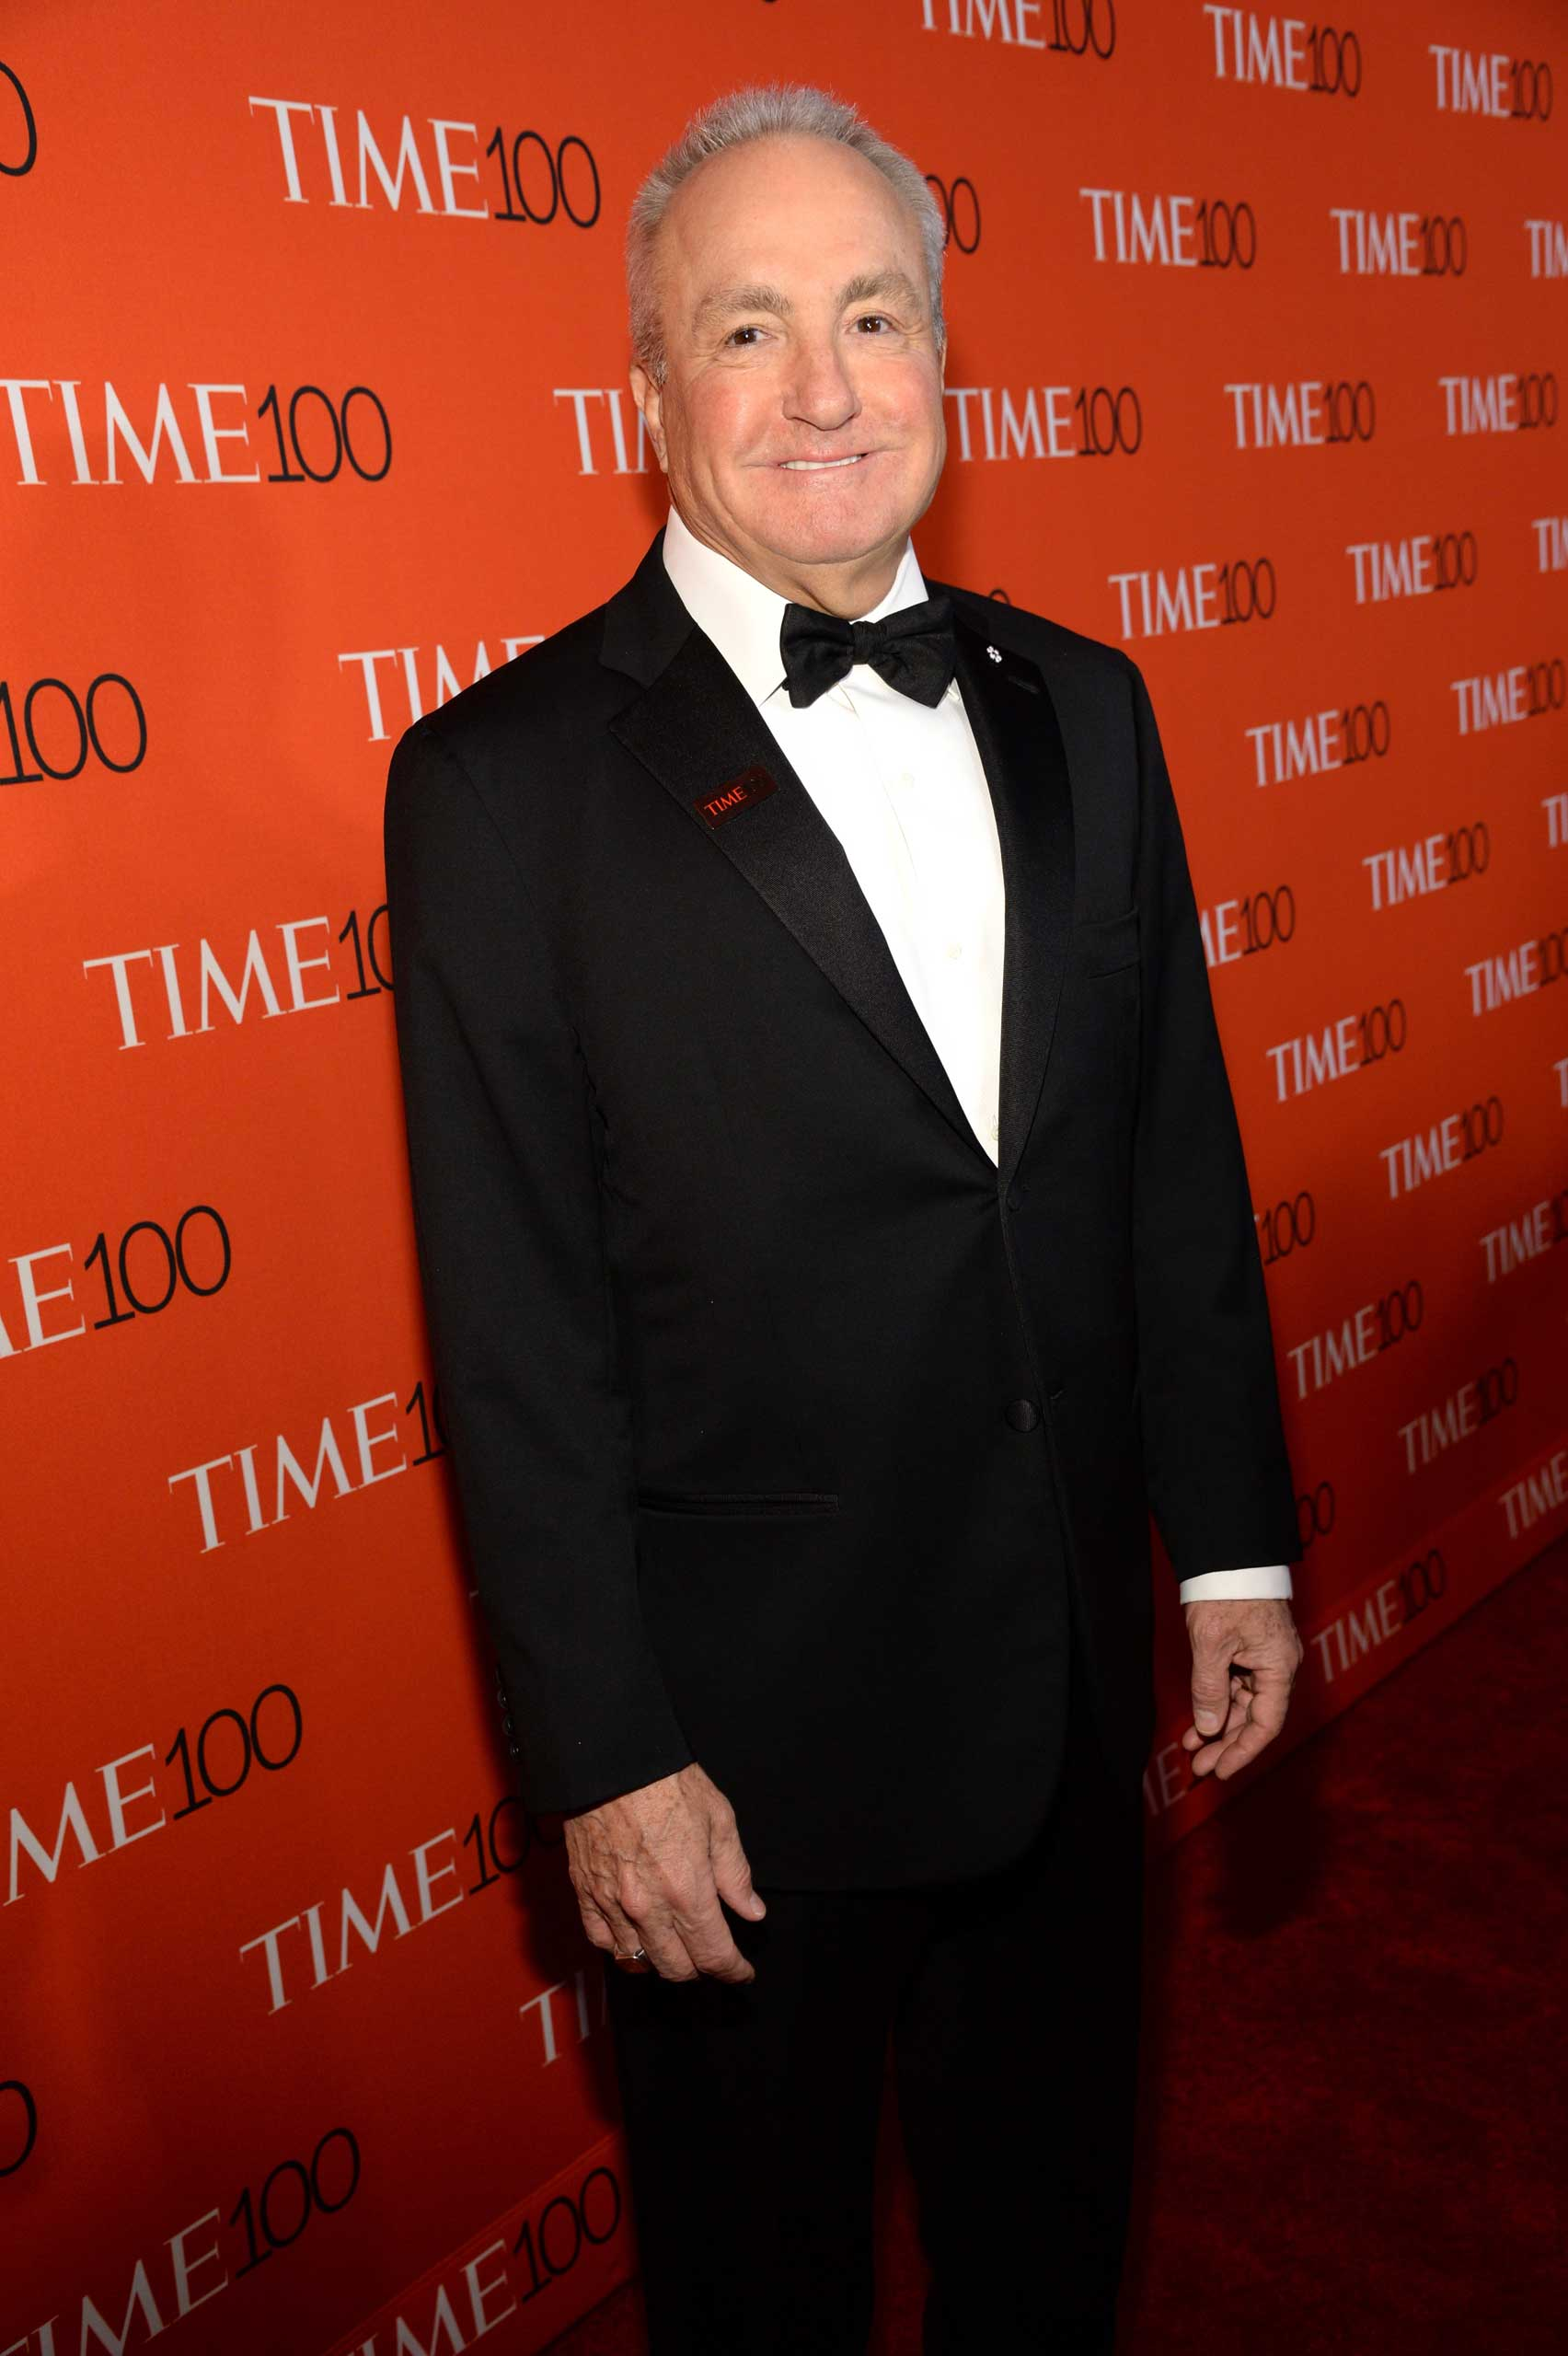 Lorne Michaels attends the TIME 100 Gala at Jazz at Lincoln Center in New York, NY on Apr. 21, 2015.